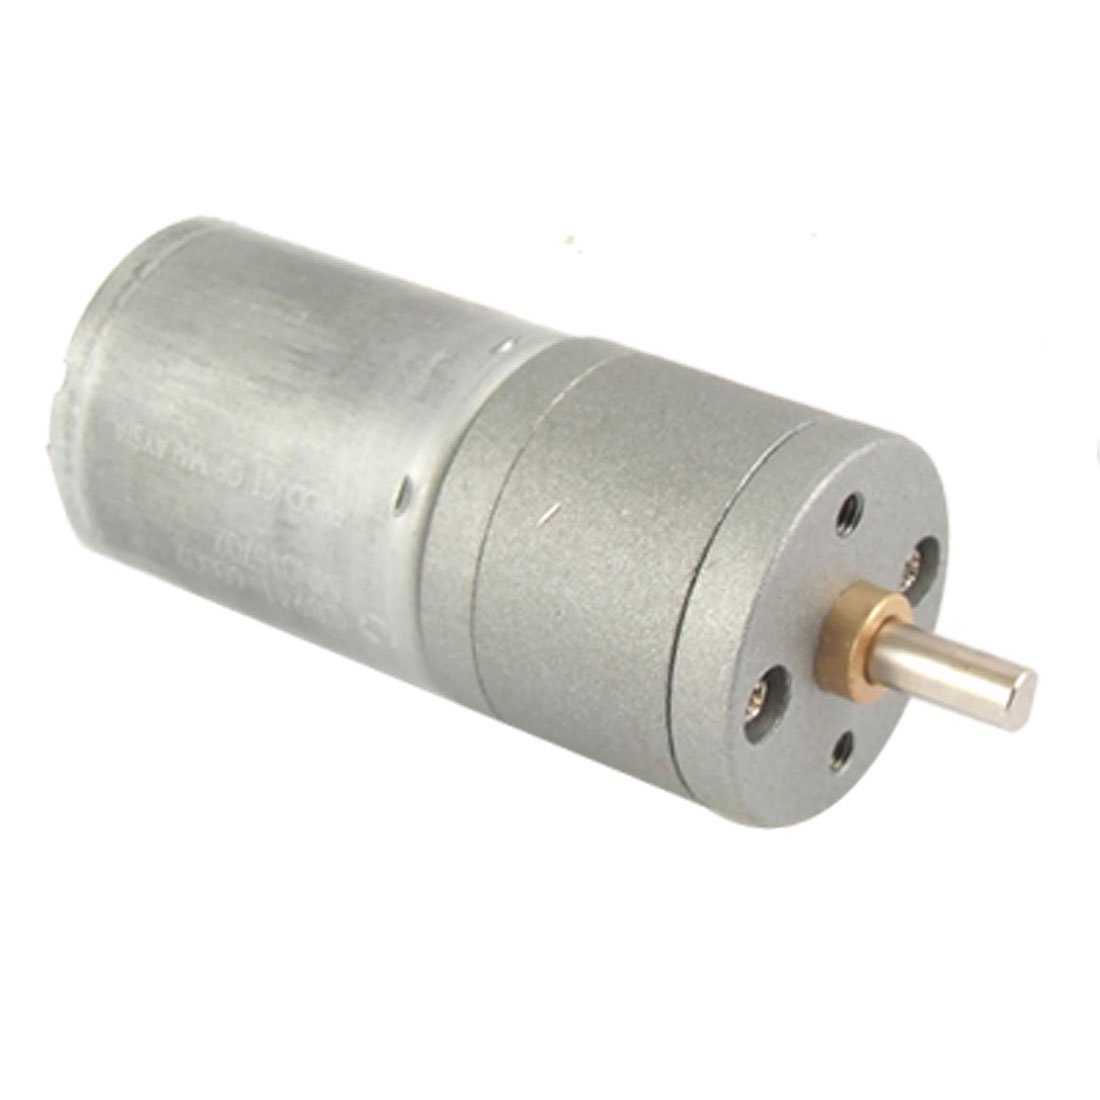 все цены на DHDL-12V DC 100RPM High Torque Gear Box Electric Motor 25mm онлайн